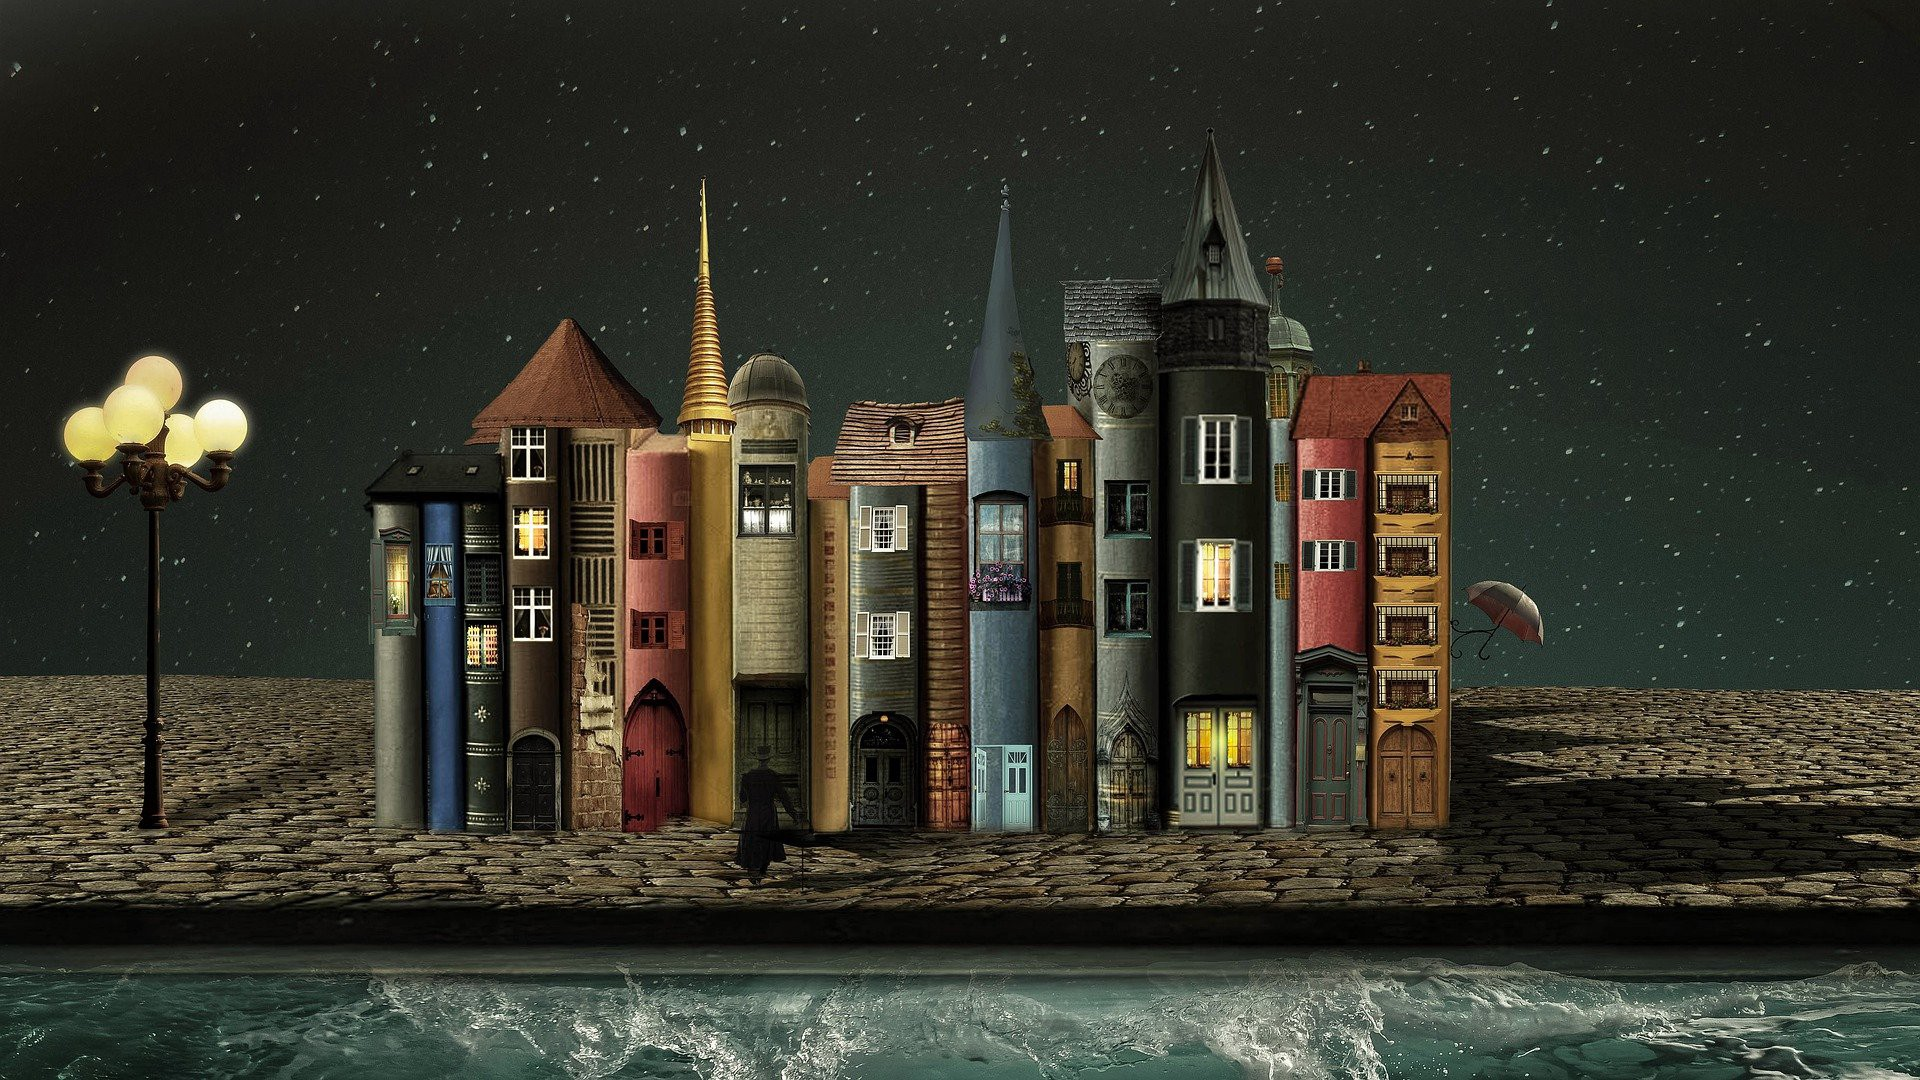 A fantasy view of a bookstore world